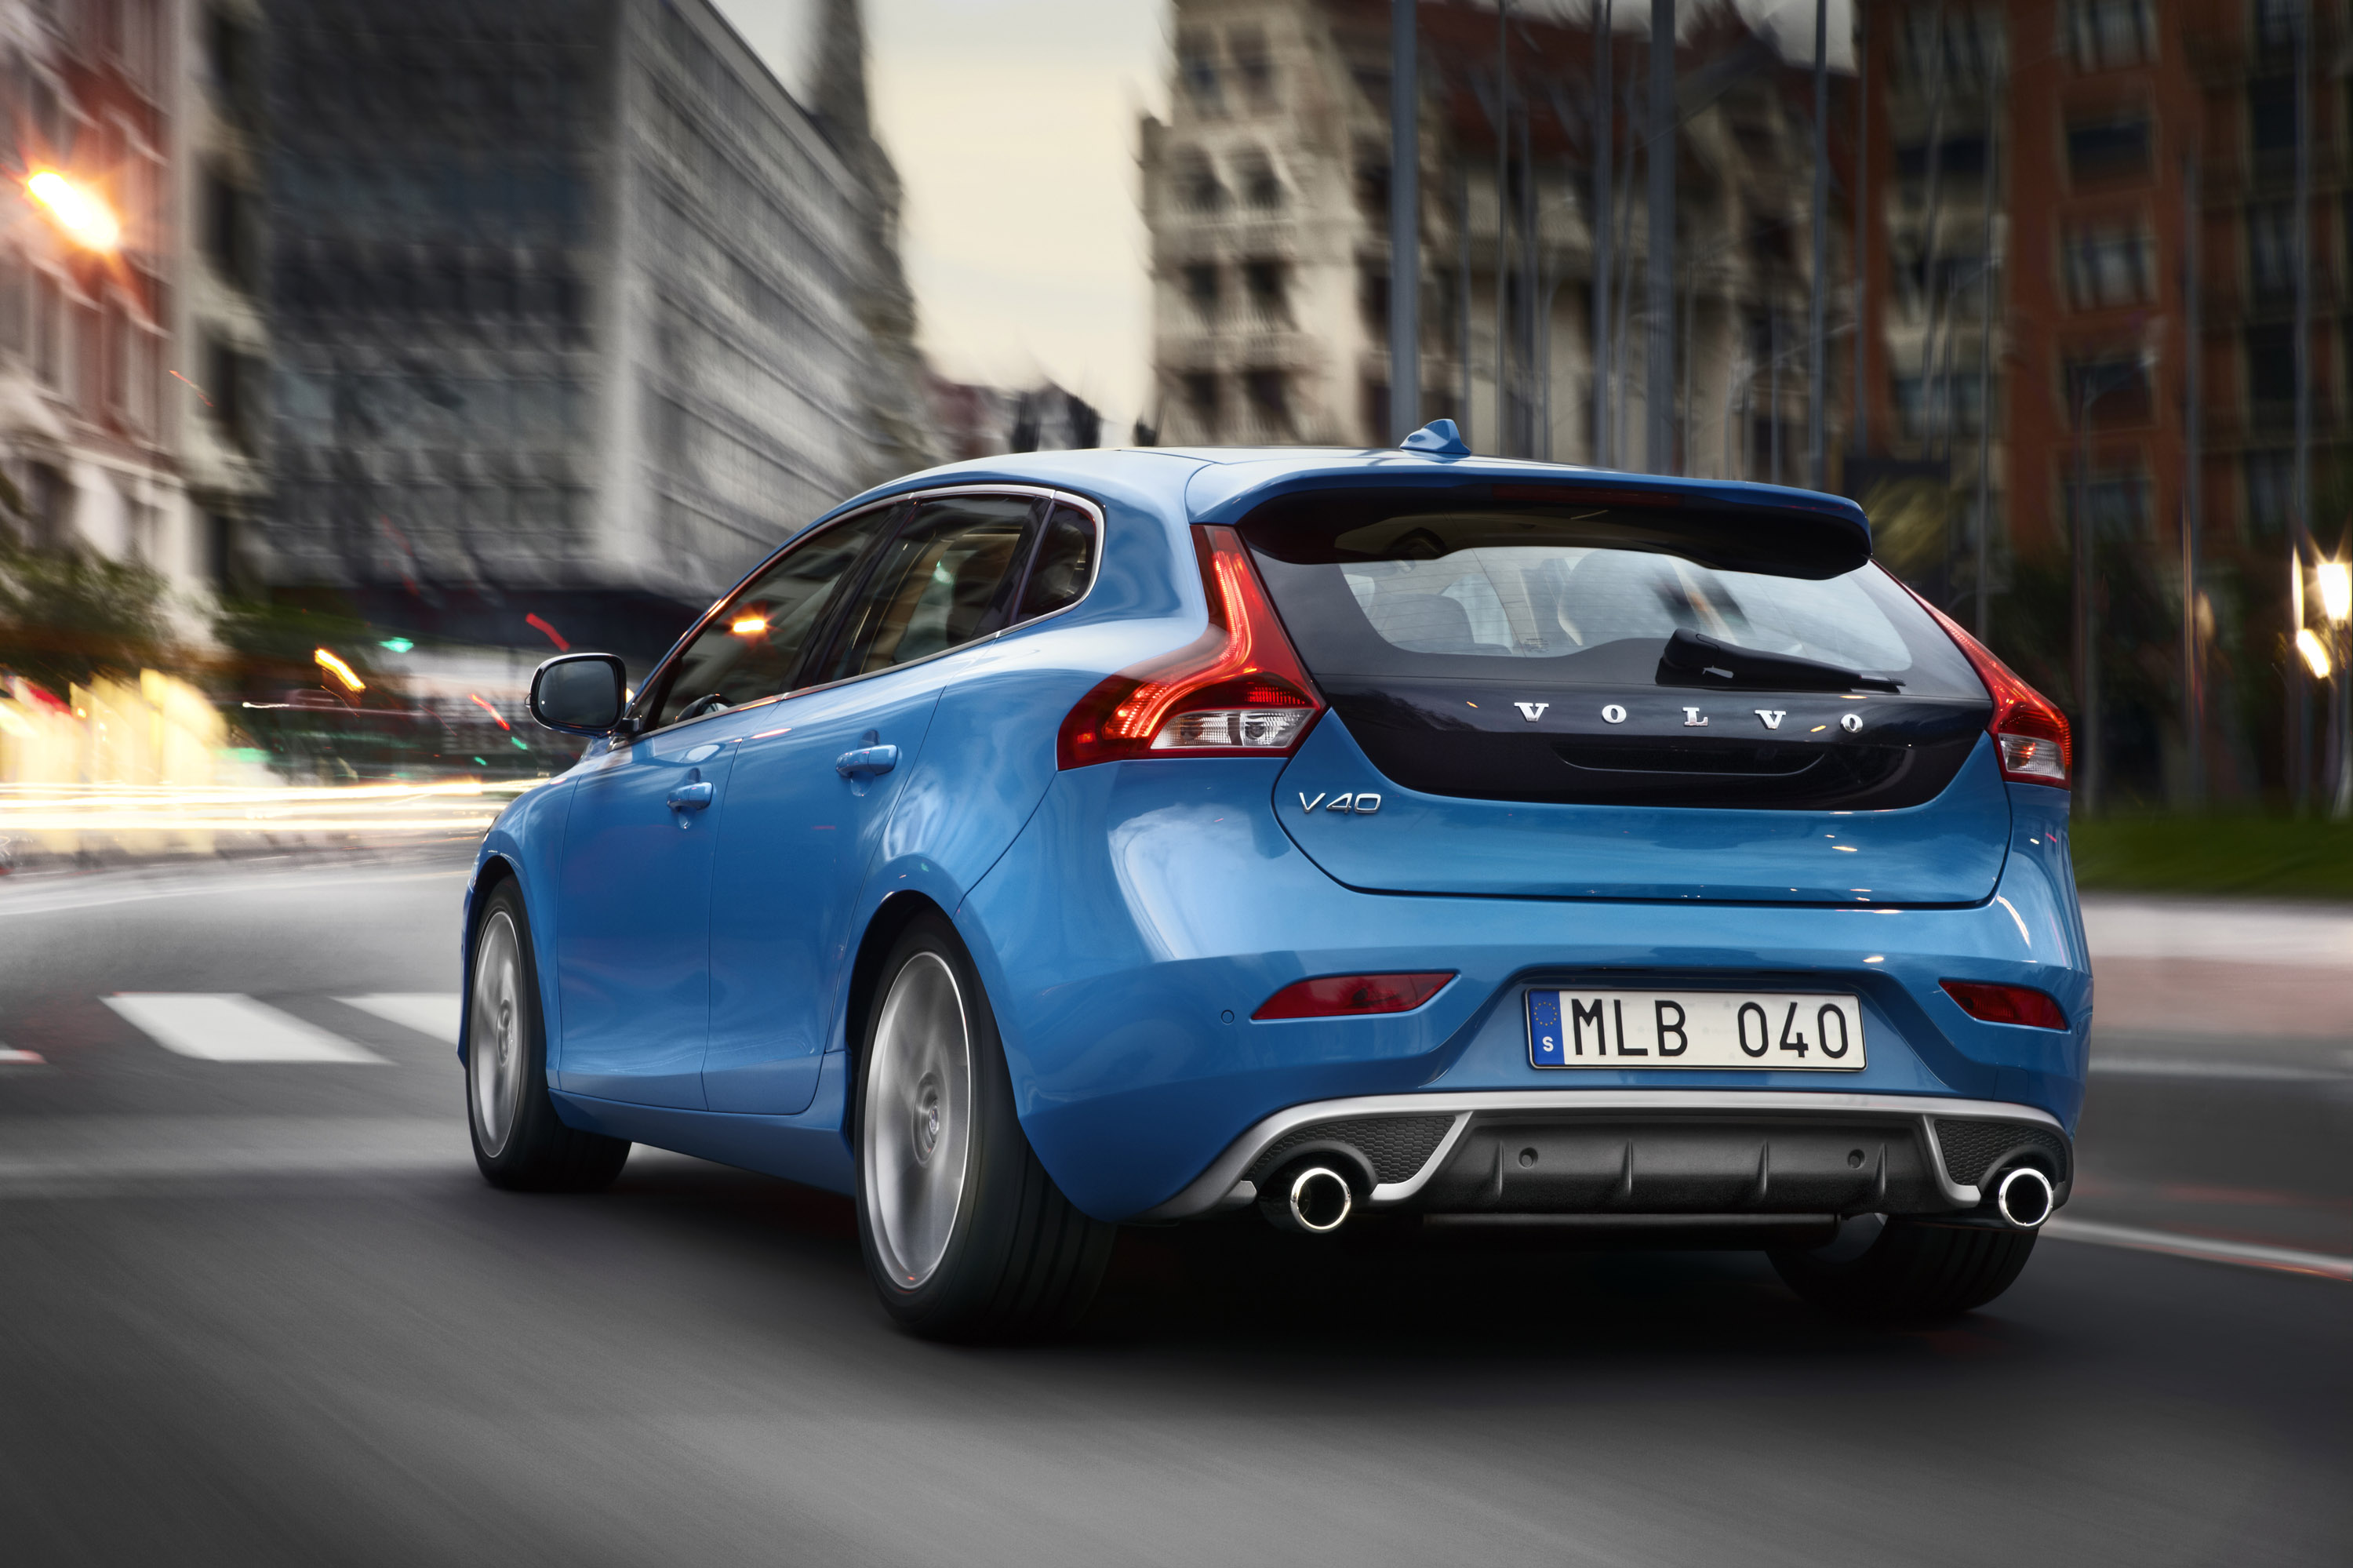 2013 Volvo V40 R-Design Debuts in Paris [VIDEO]